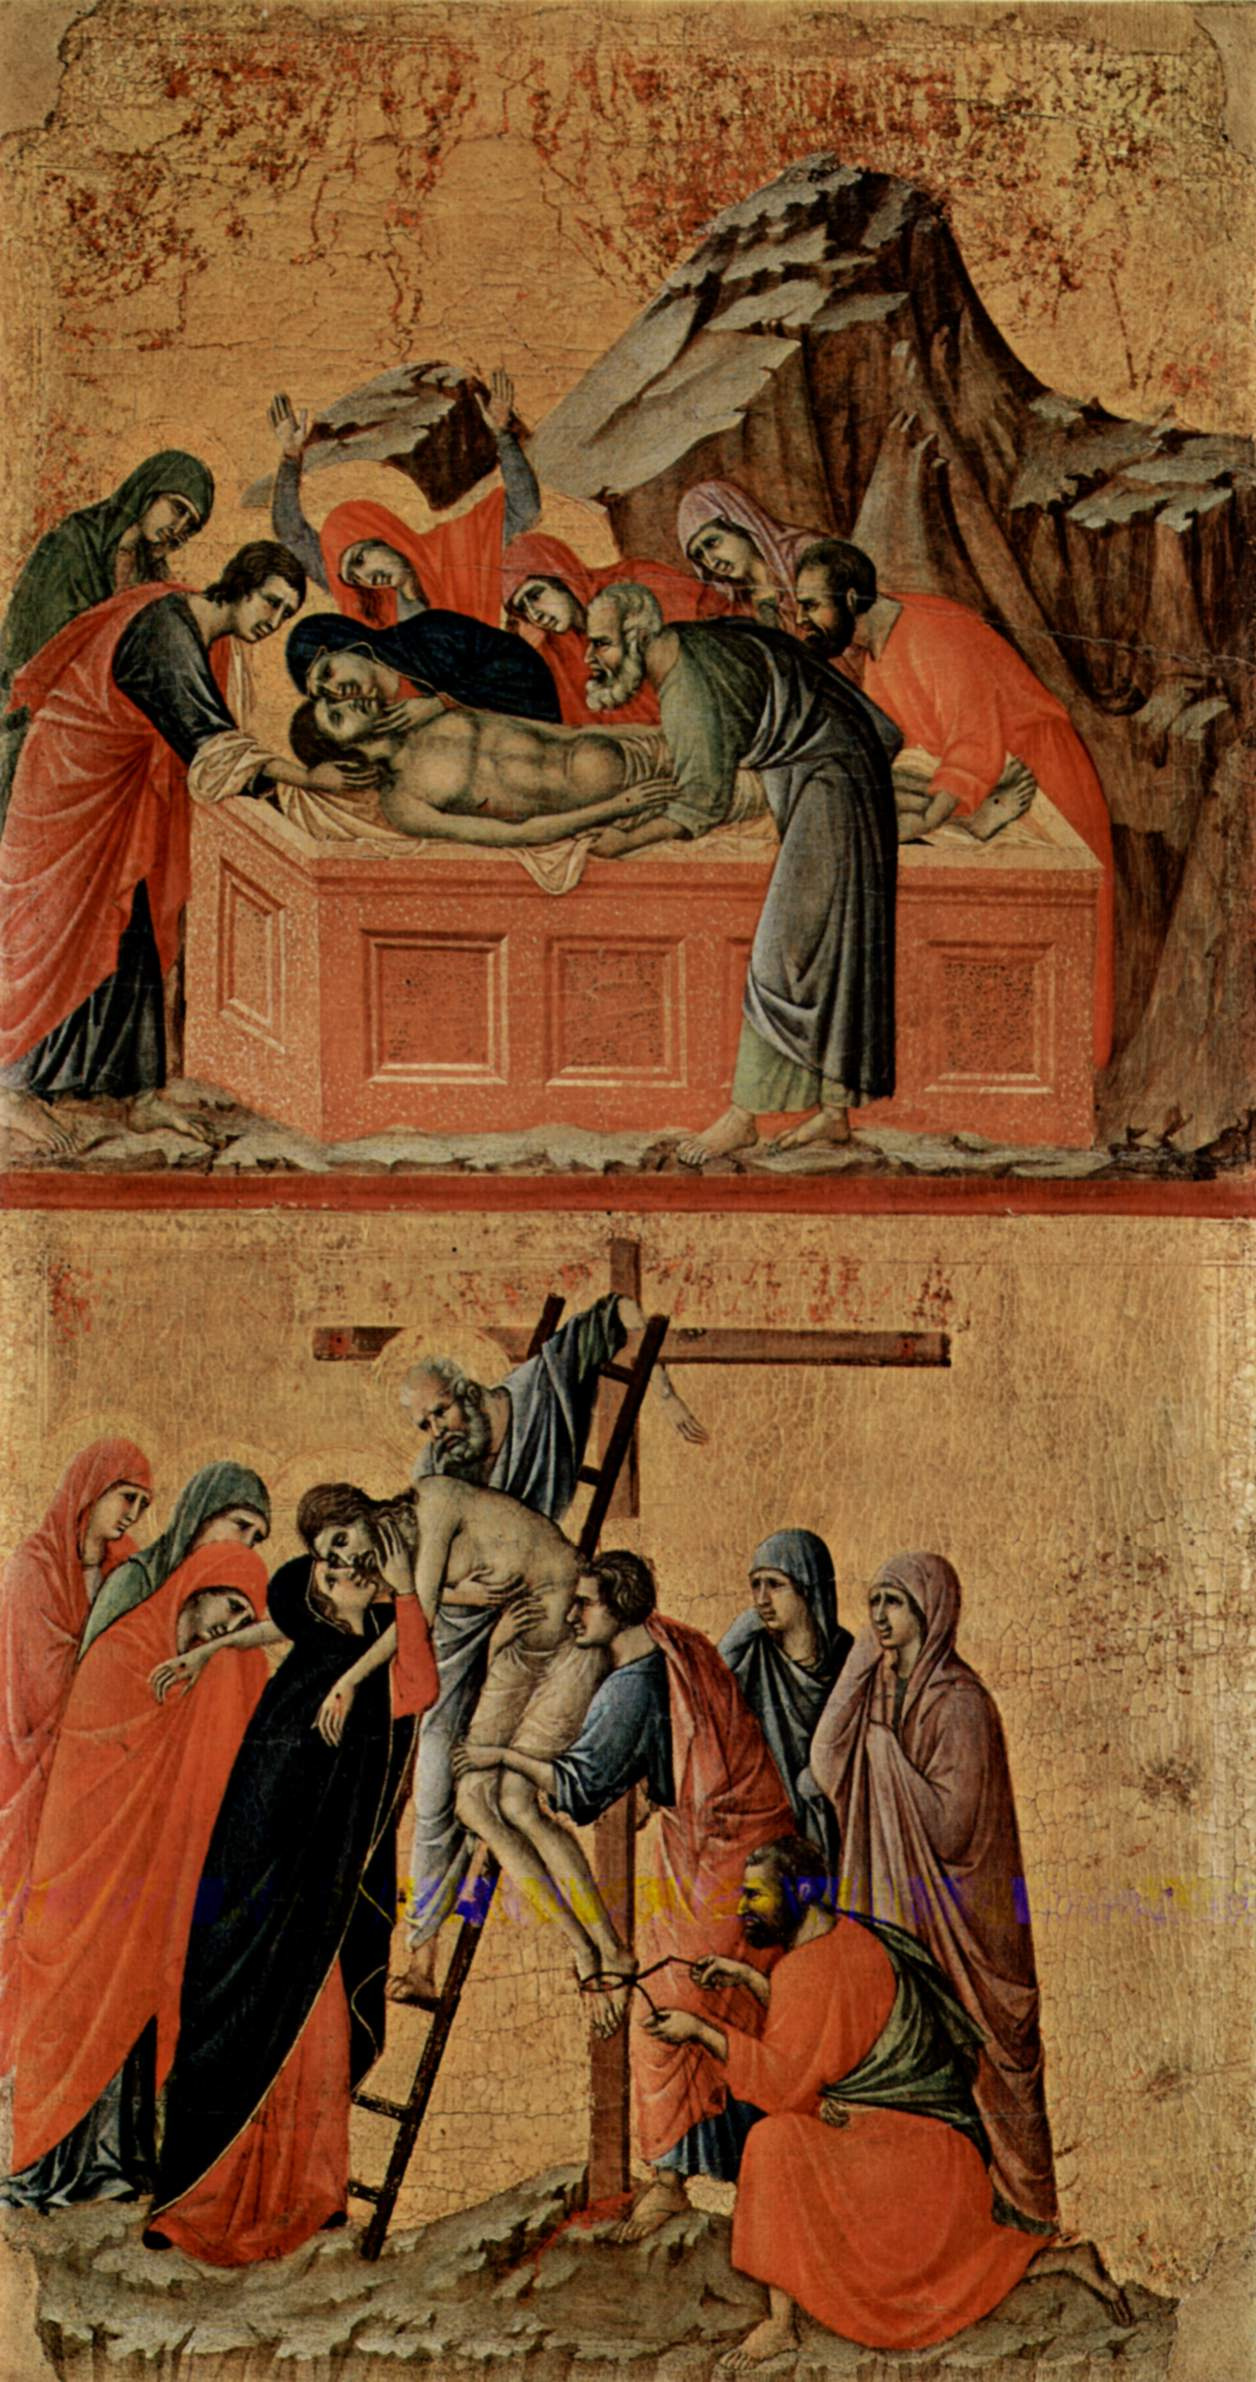 Duccio di Buoninsegna. Maesta, altar of Siena Cathedral, reverse side, Register with scenes of the passion of Christ: entombment and SAEs